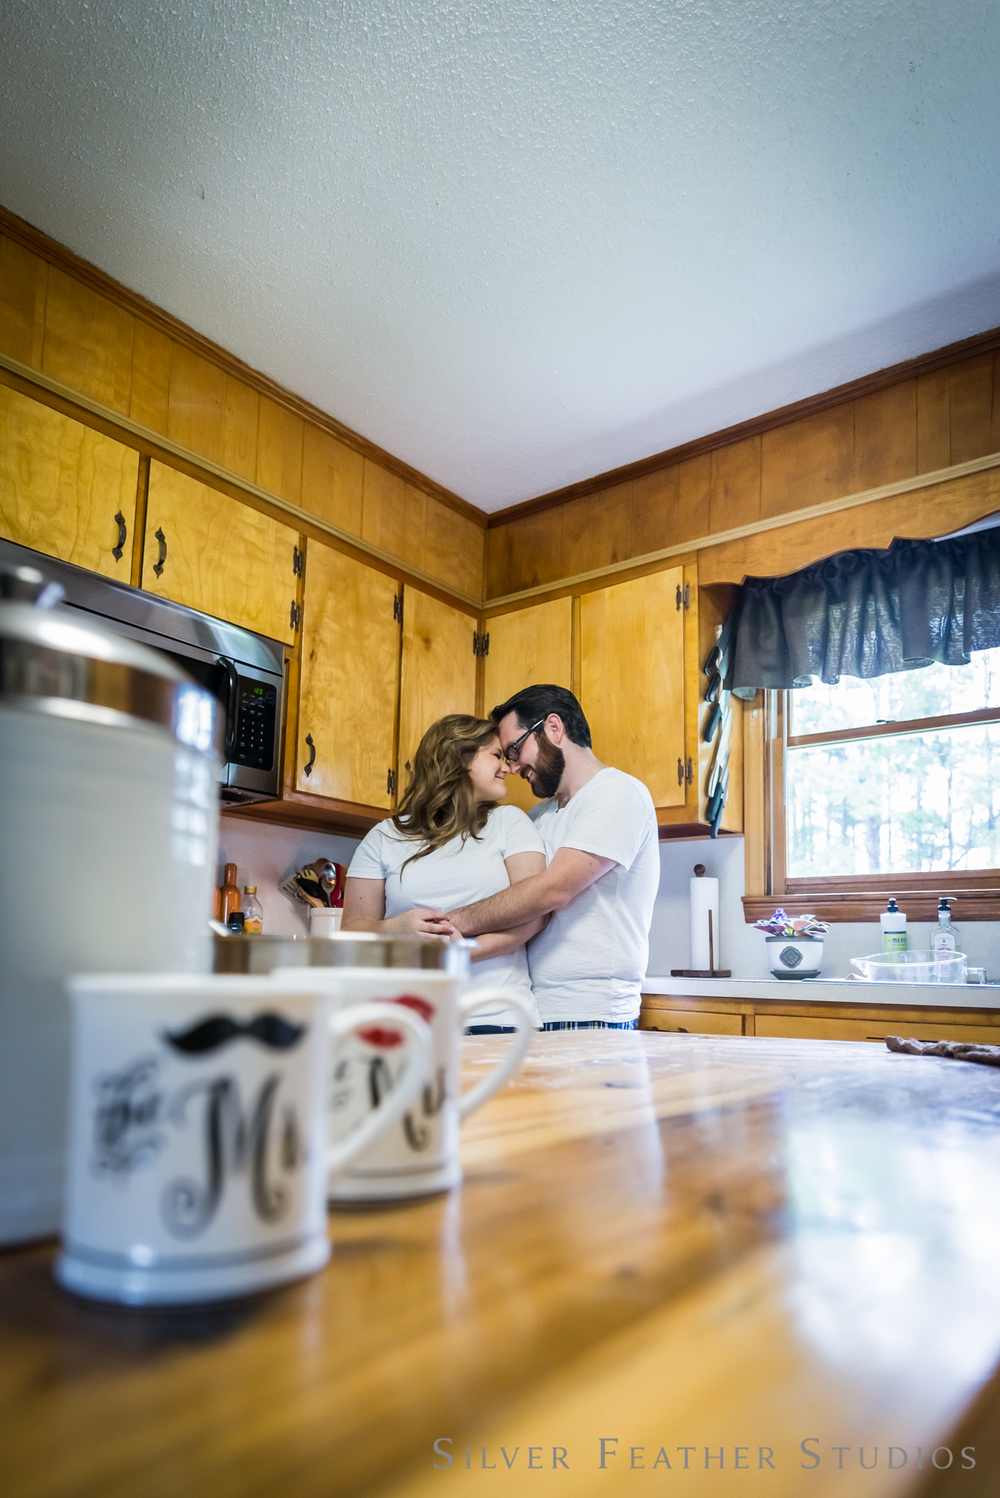 home lifestyle session featuring cuddles and coffee. © silver feather studios | wedding photography in burlington